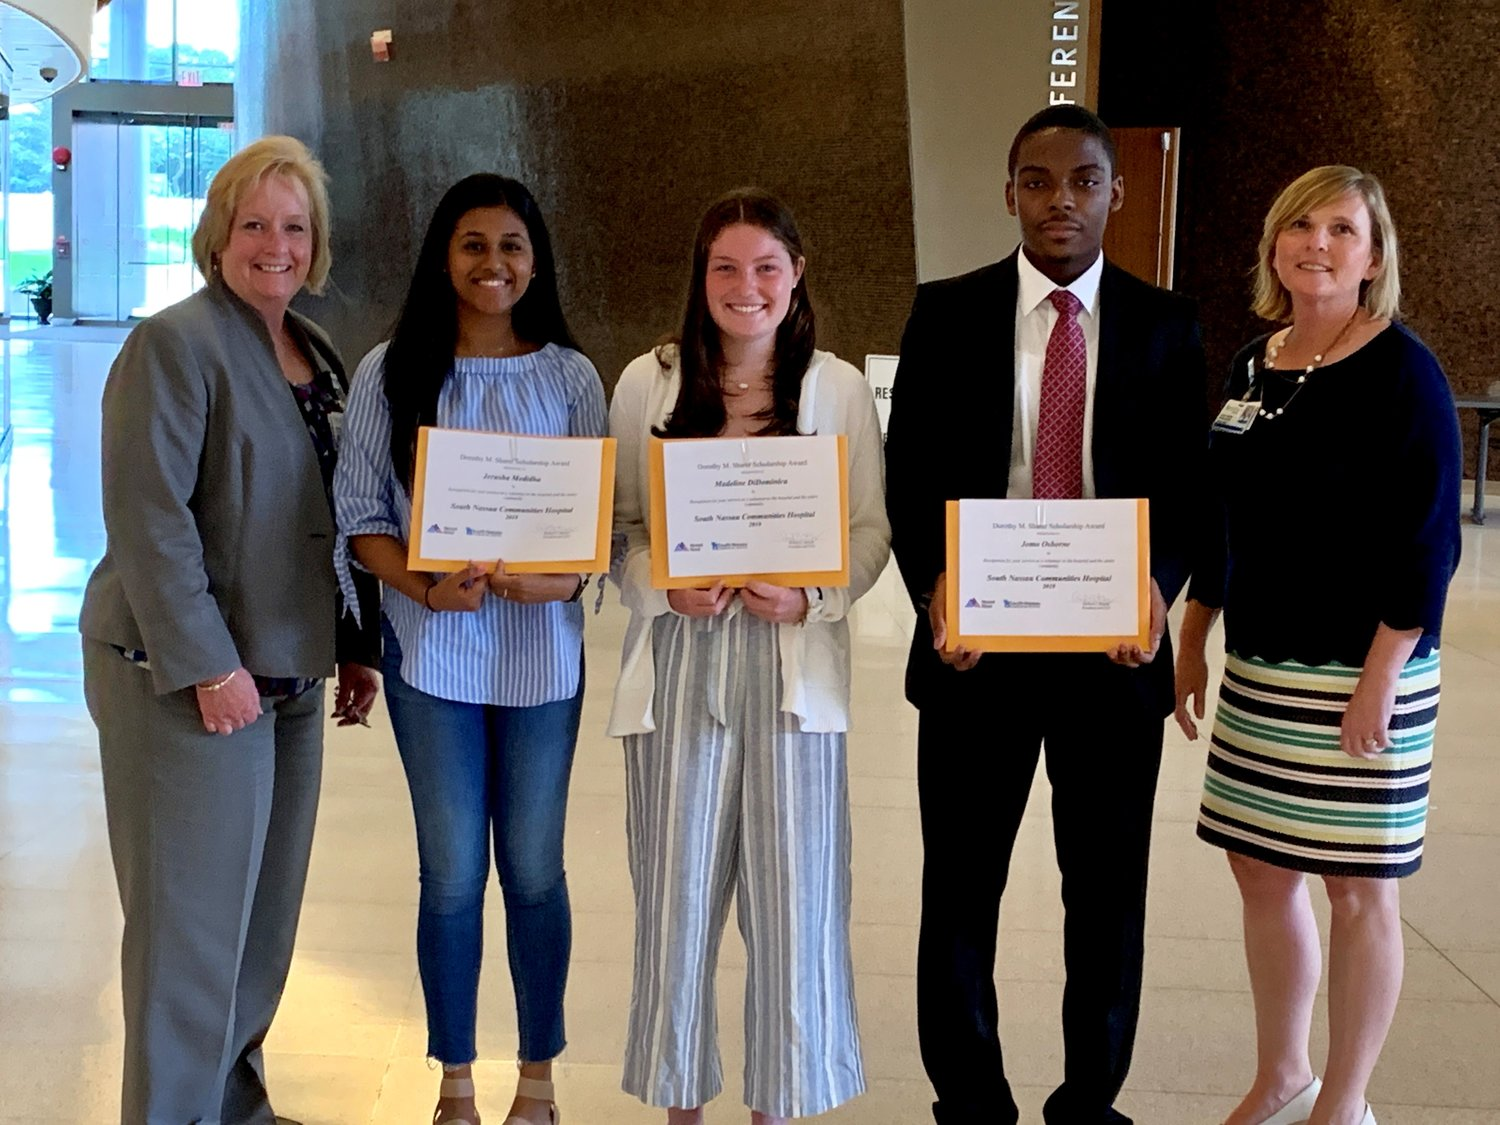 Mary Golden, assistant vice president of human resources, far left, and Anne Marie Fernandez, director of volunteers, far right, presented South Nassau's Dorothy M. Sharer Scholarship to Jerusha Medidha, of Rockville Centre, left, Madeline DiDominica, of Oceanside, and Jomo Osborne, of Baldwin.